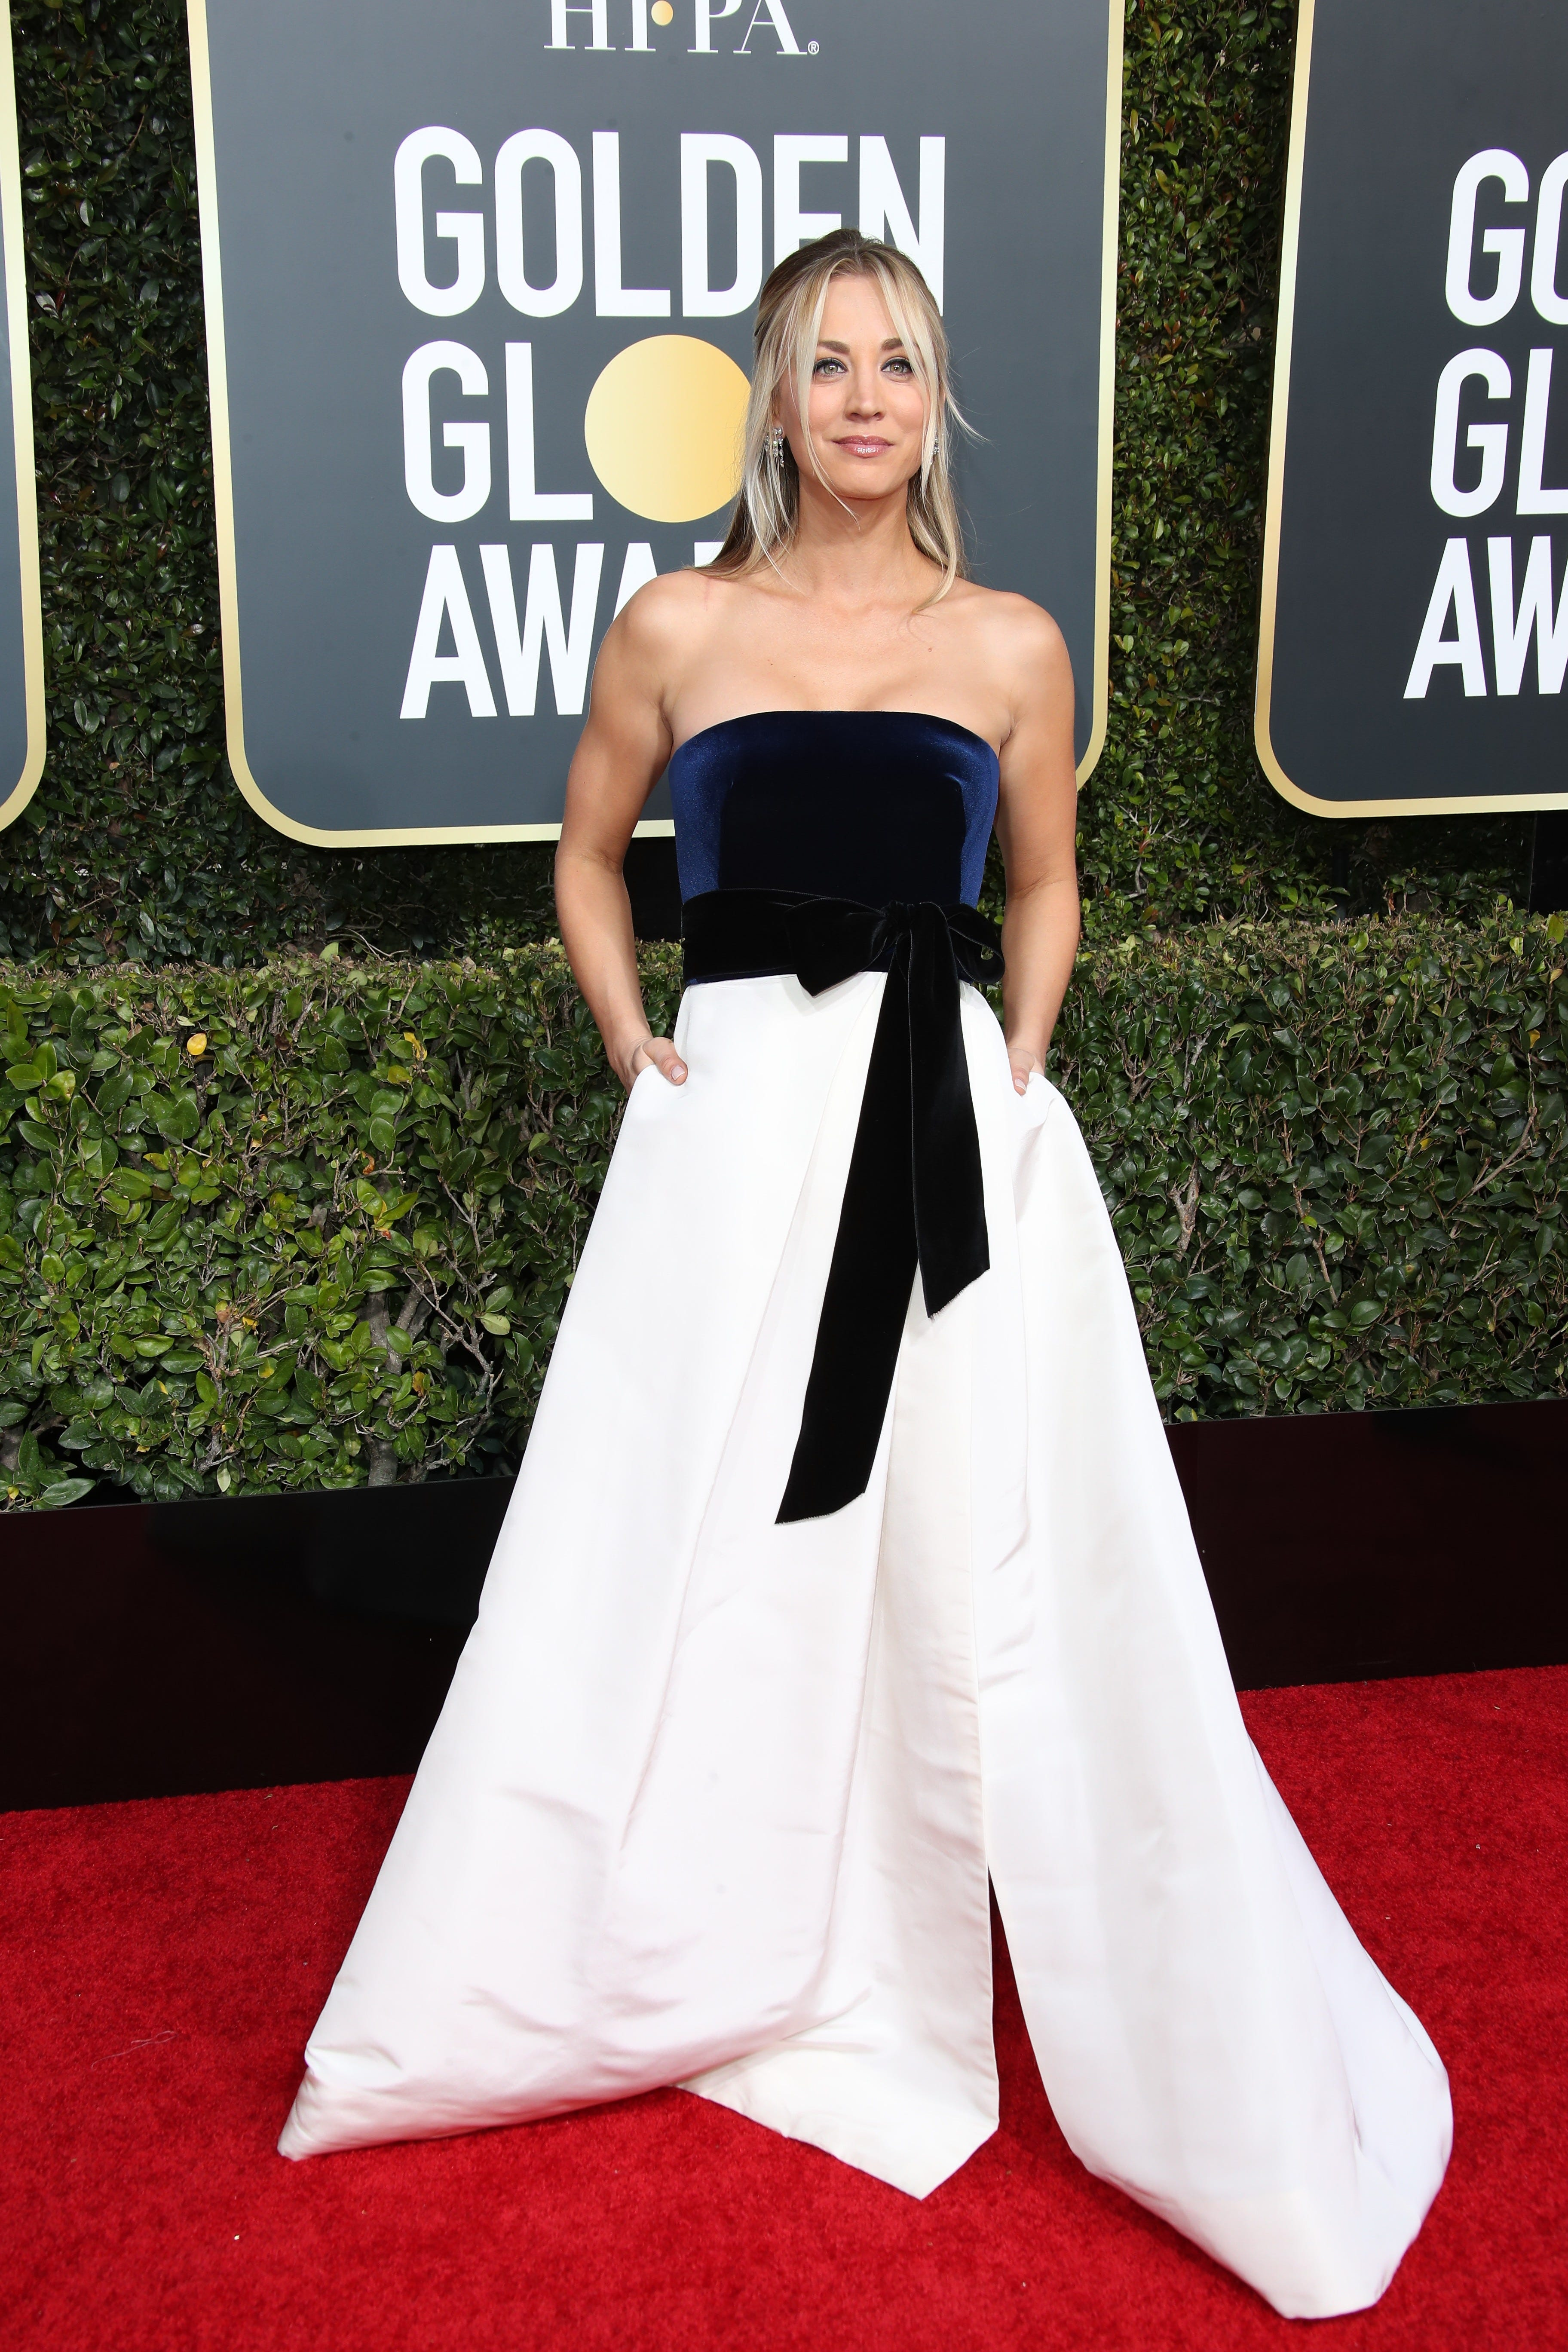 5486d4b80f93 636911754003524249-XXX-Entertainment-76th-Golden-Globe-Awards-20190106-USA -djm-21.JPG